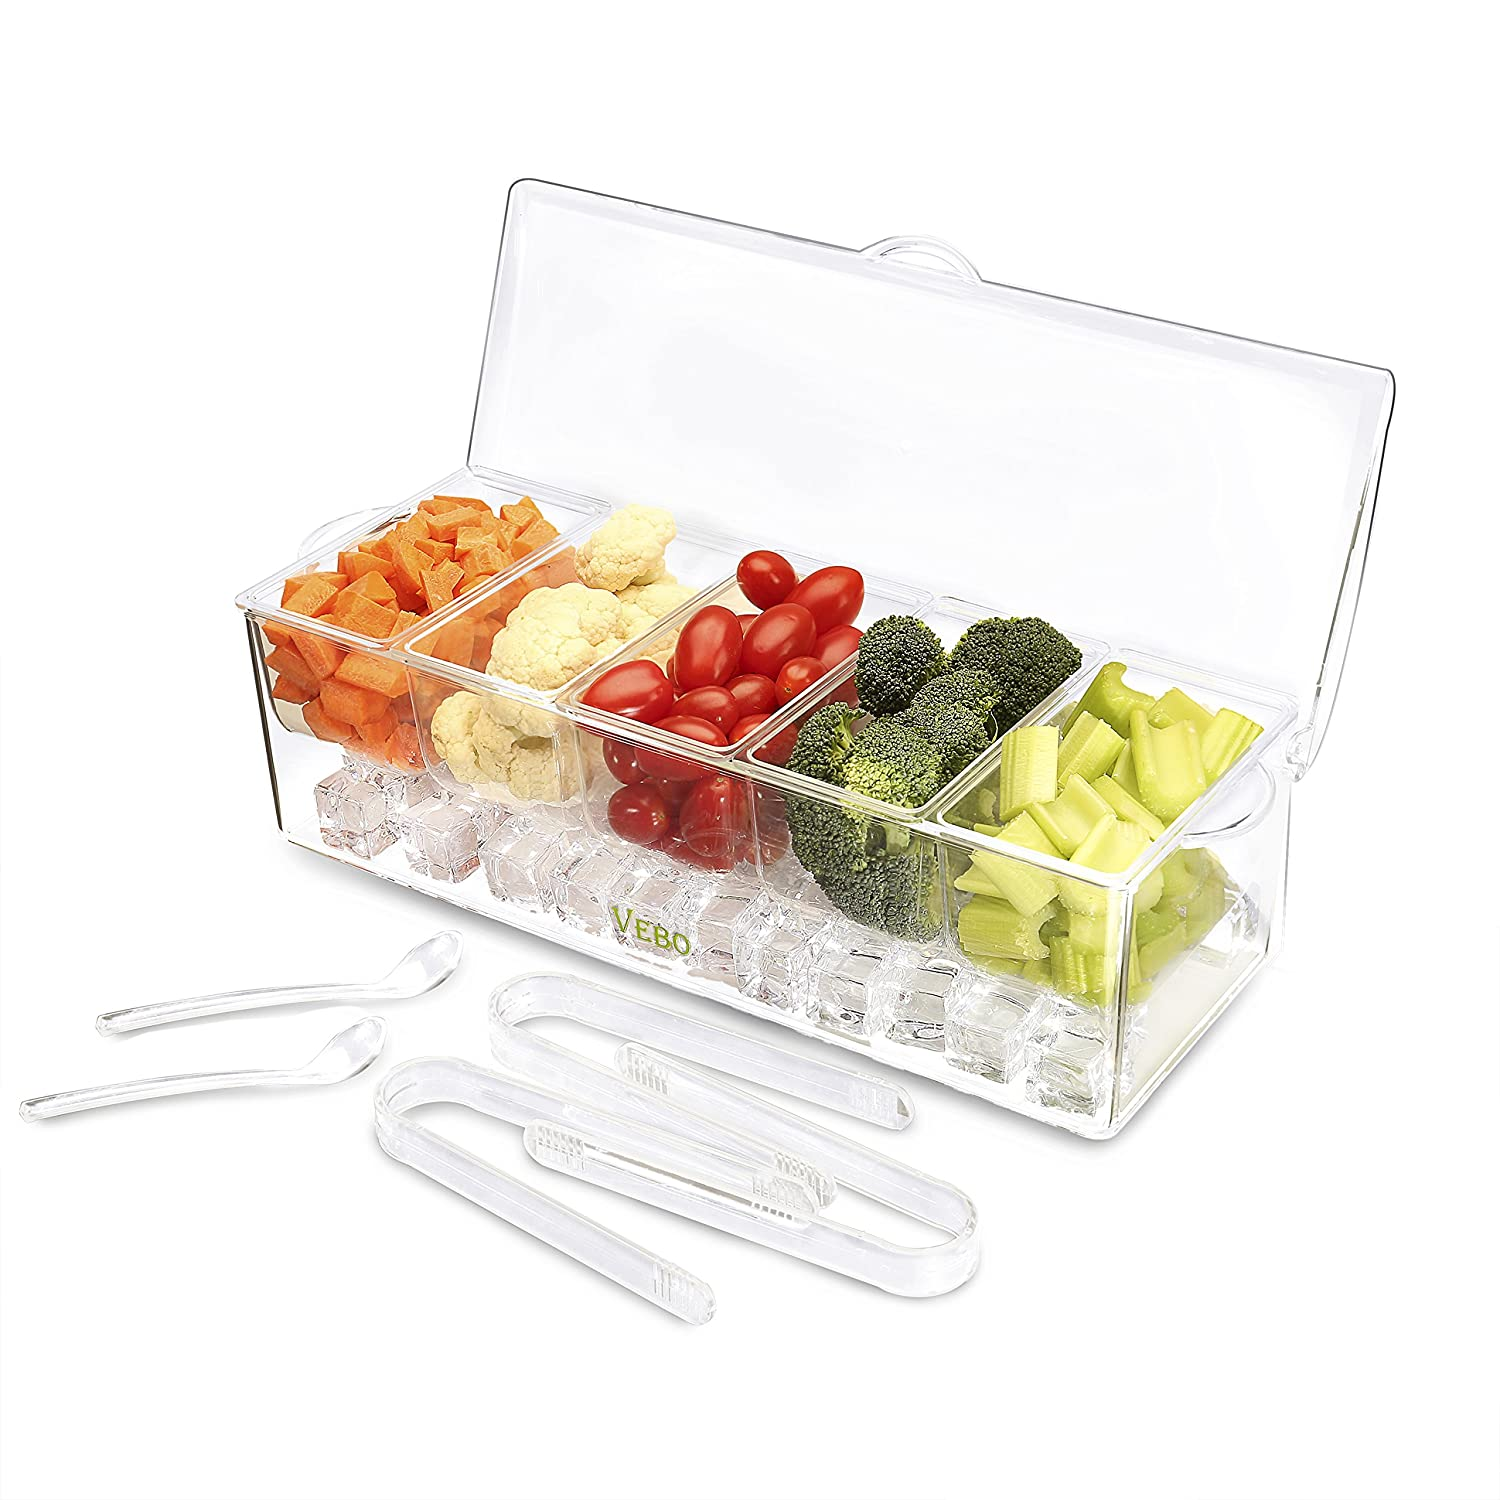 Ice Chilled 5-Compartment Condiment Server Caddy By VEBO | Five Removable Dishes w/Hinged Lid | Shatterproof, BPA-Free Plastic Box Tray | Great For Spices, Sauces, Dressings, Fruits, Picnic & BBQ